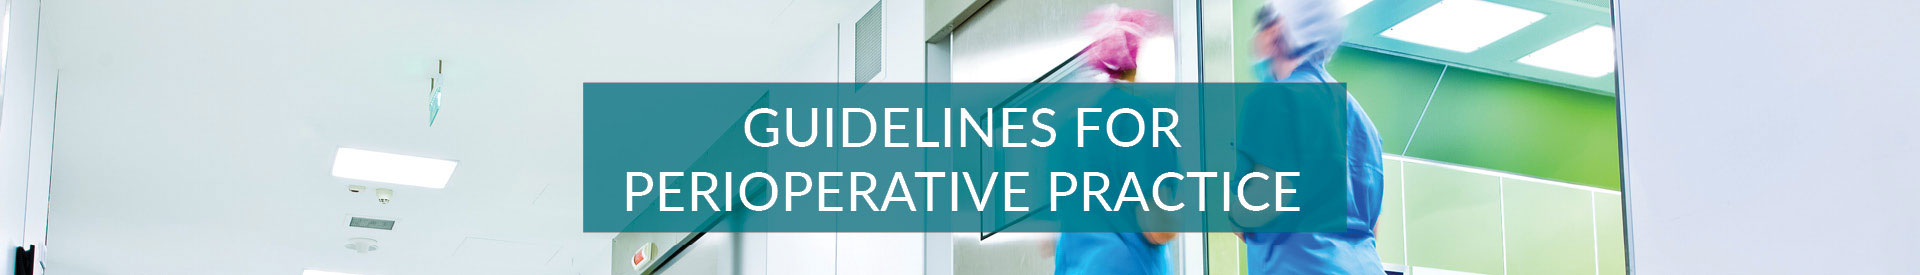 AORN Guidelines for Perioperative Practice